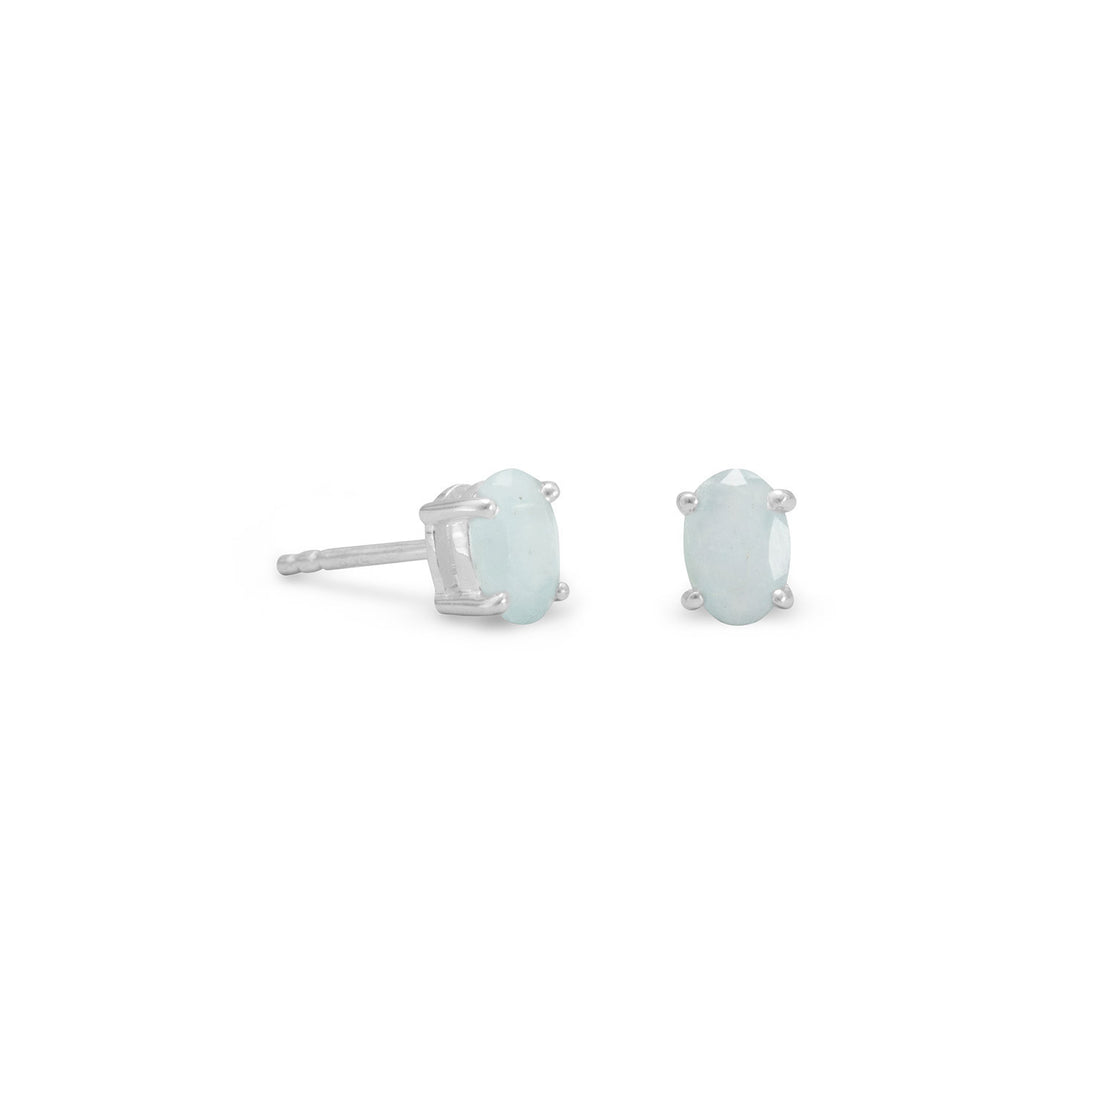 Faceted Oval Aquamarine Earrings